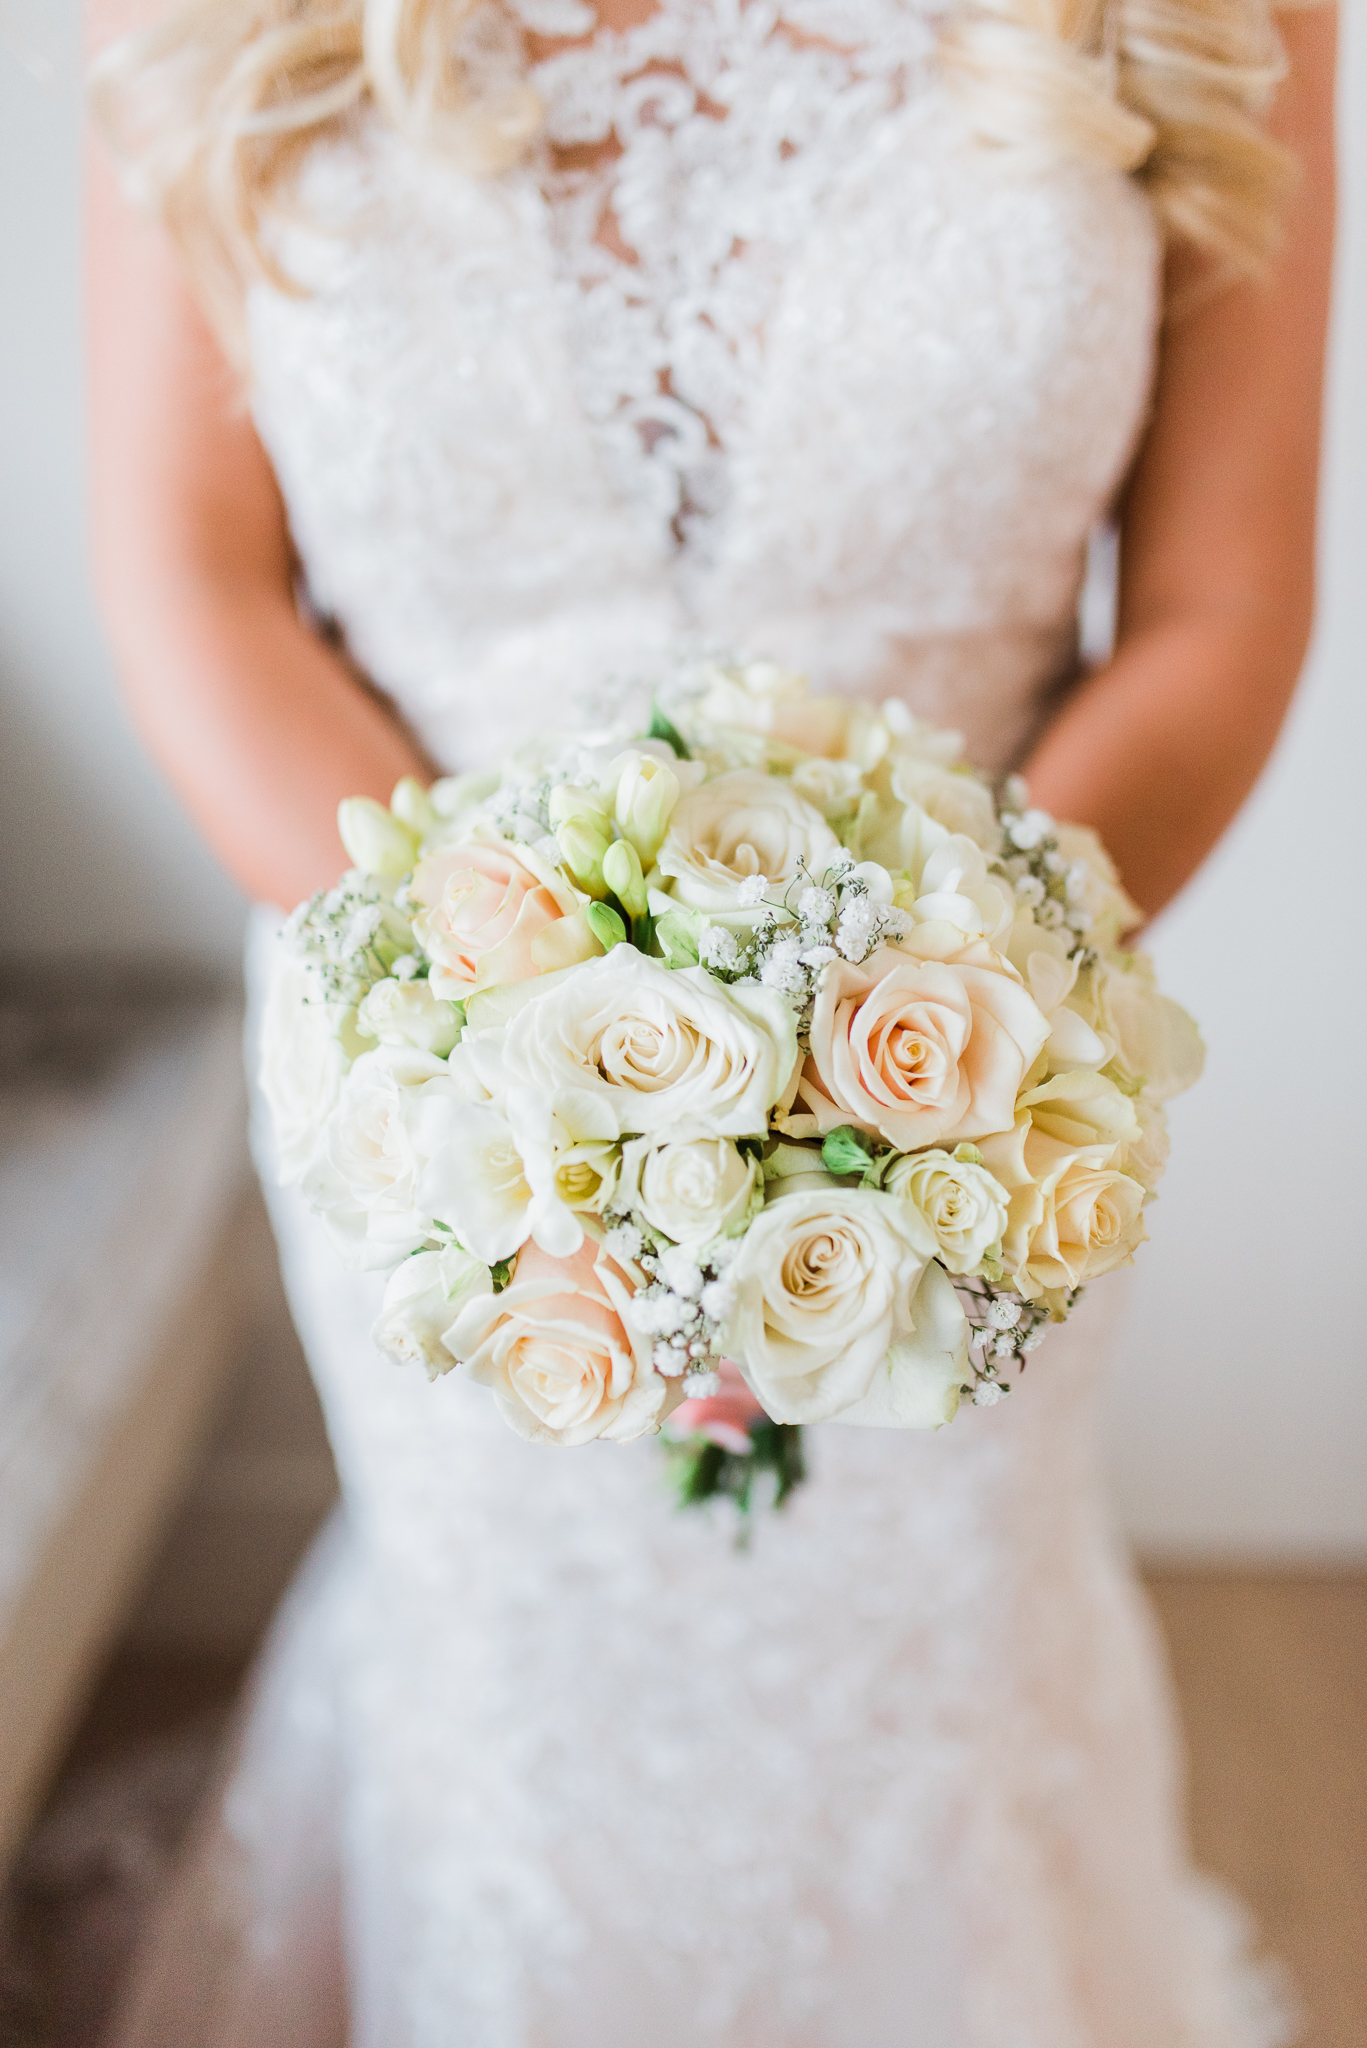 Wedding bouquet of white and cream roses